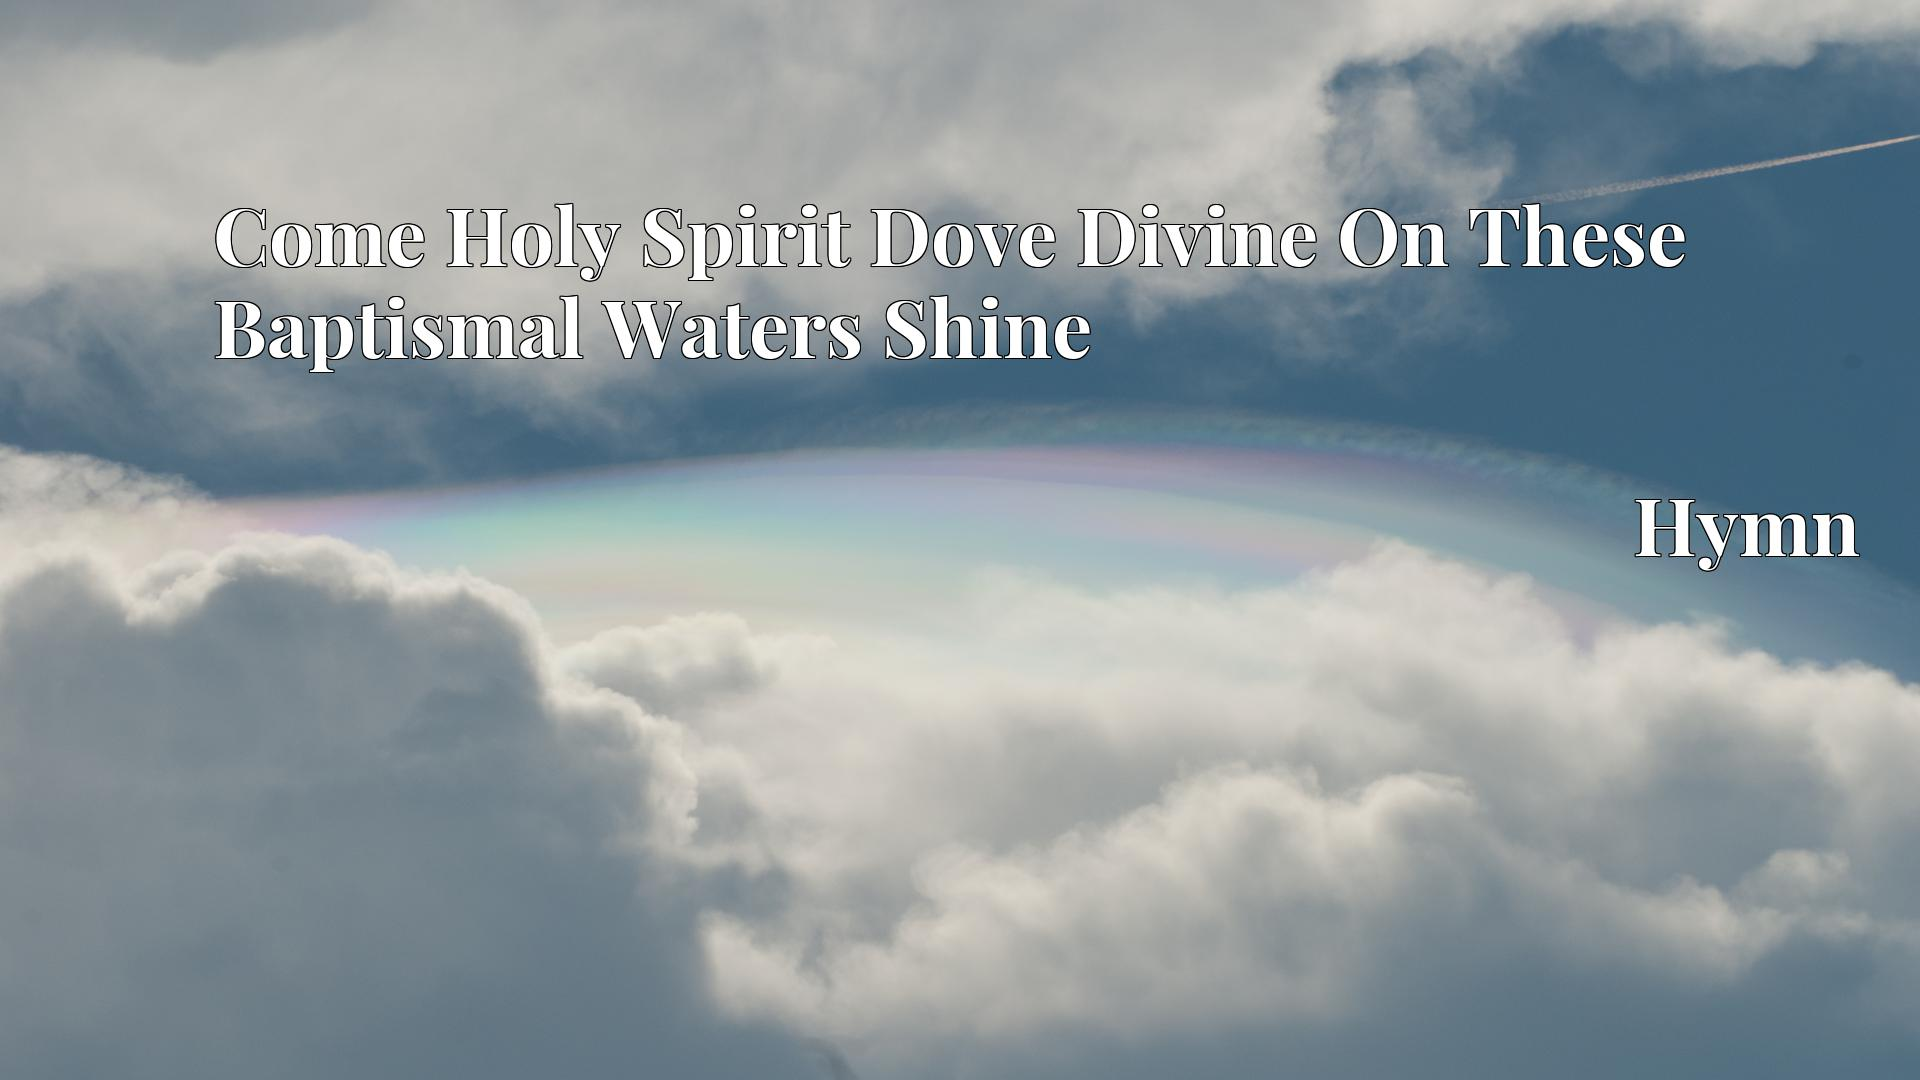 Come Holy Spirit Dove Divine On These Baptismal Waters Shine - Hymn